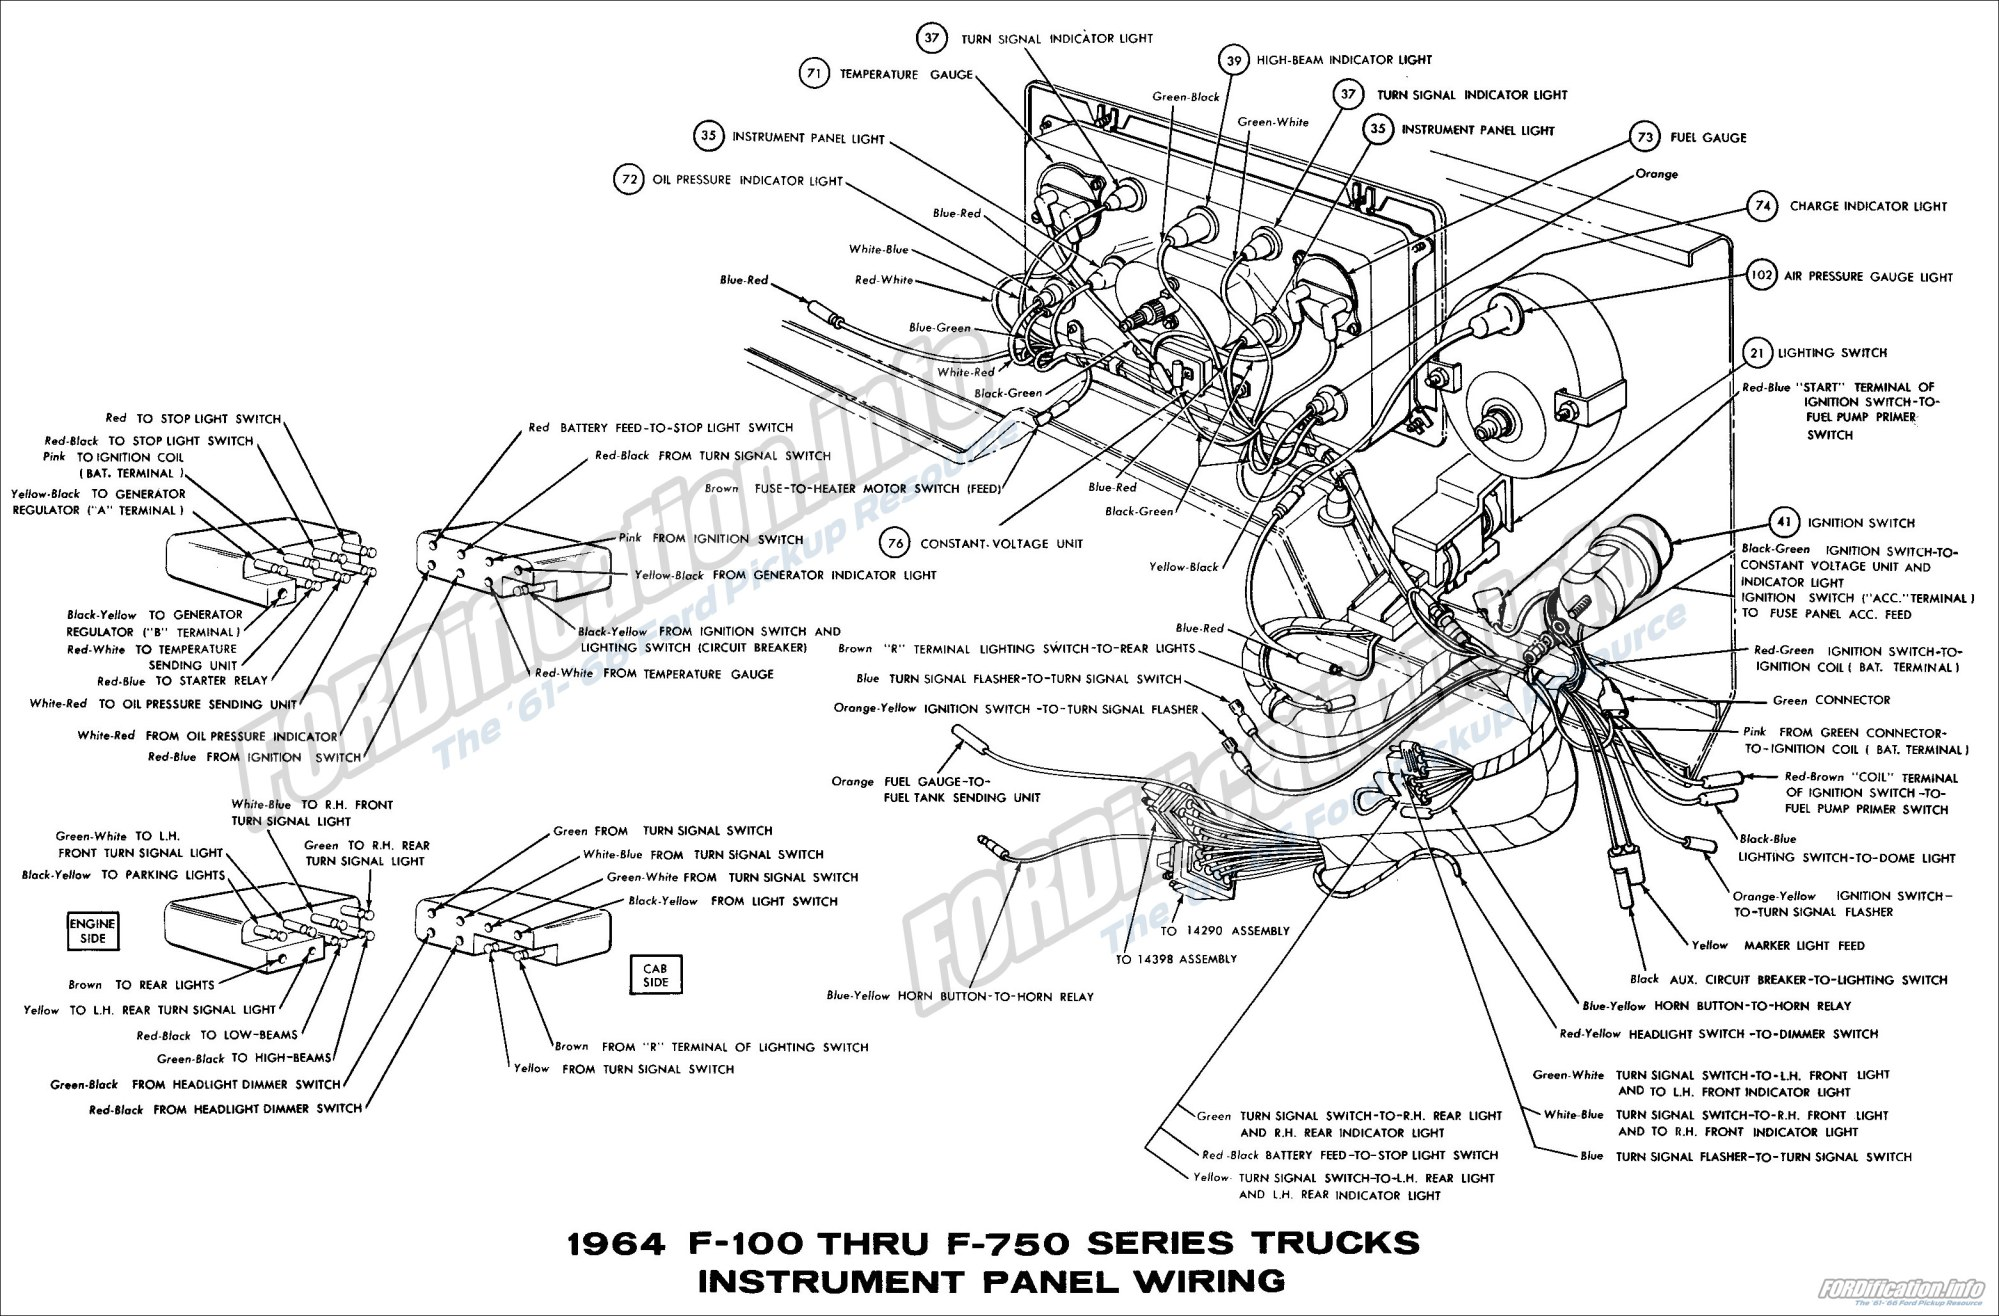 hight resolution of 1964 ford truck wiring diagrams fordification info the u002761 u0027661964 f100 thru f750 series